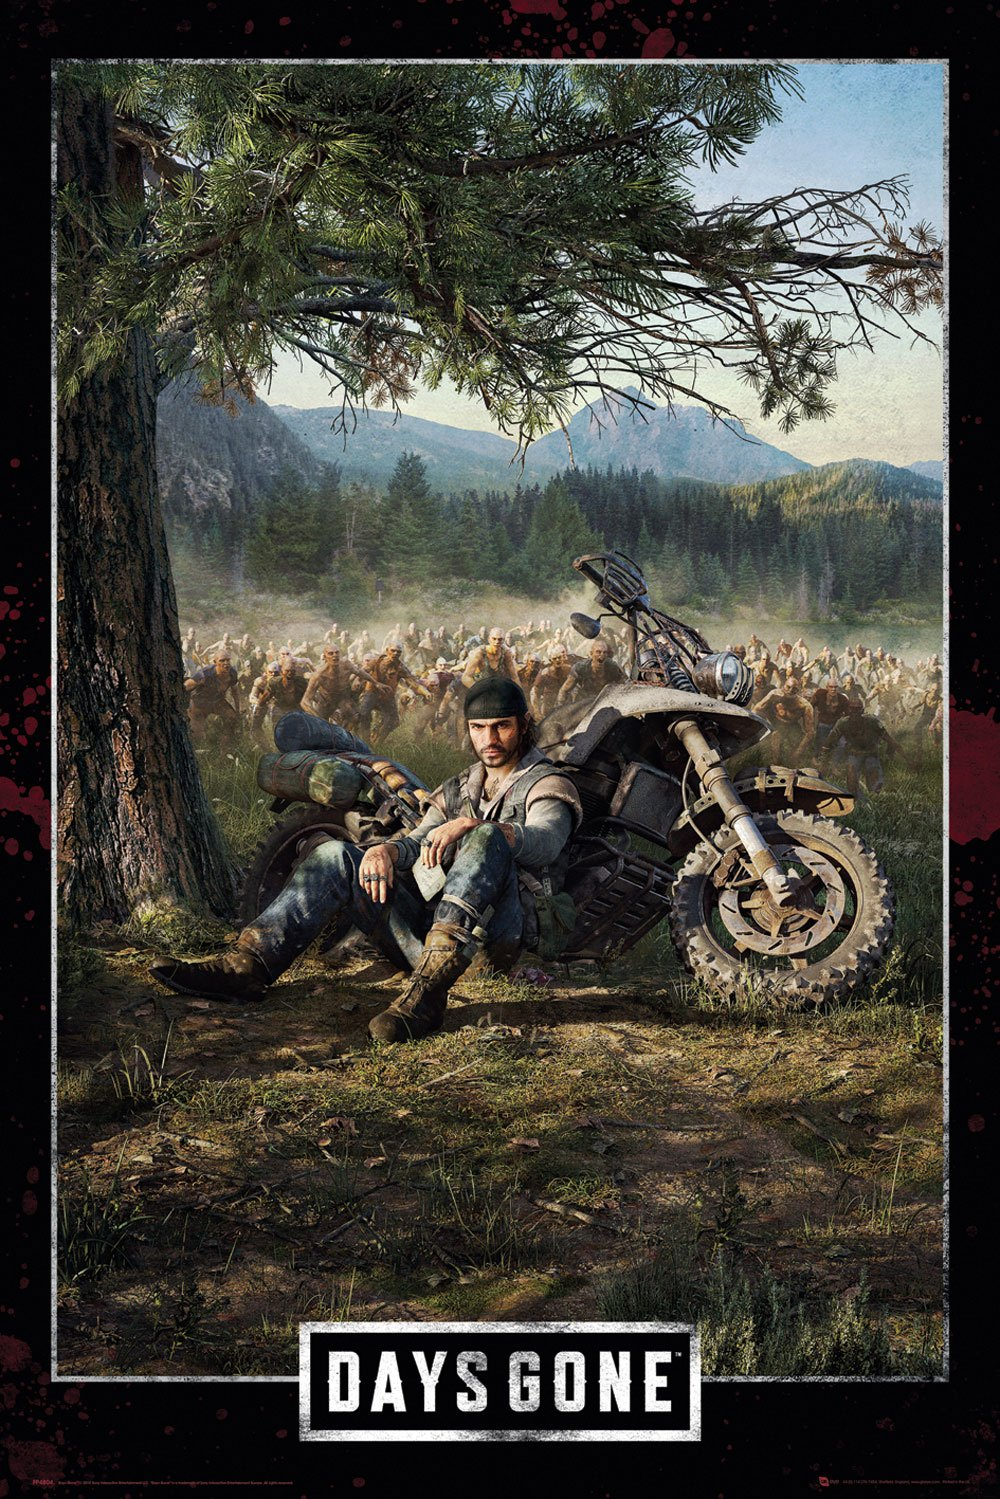 Days Gone Poster Pack Key Art Cover 61 x 91 cm (5)